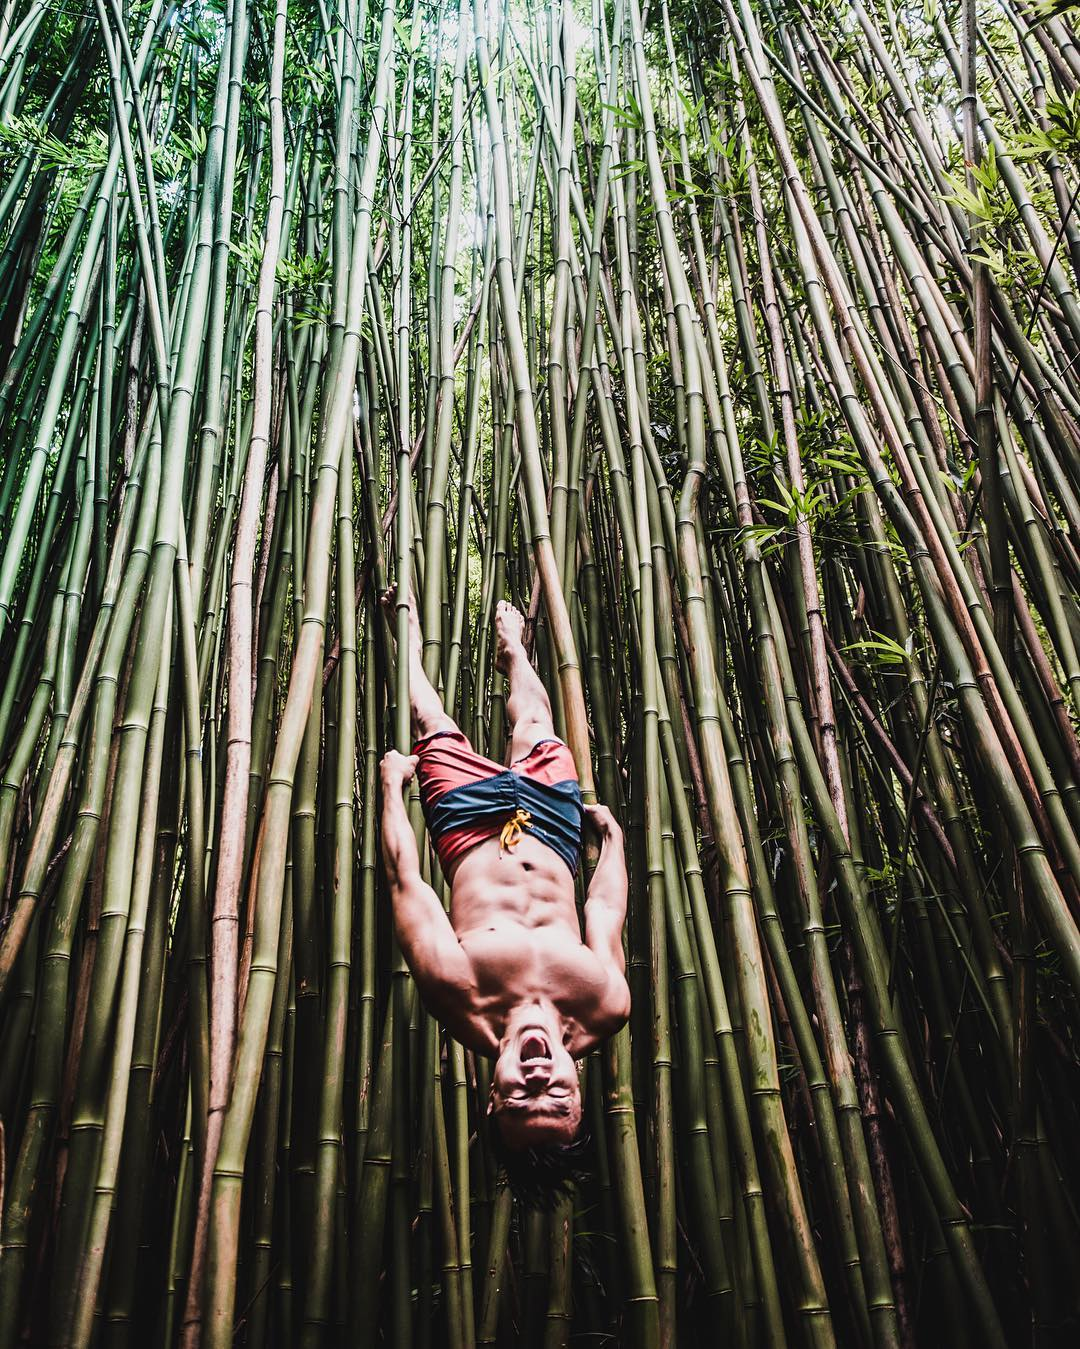 Just hanging out in the Bamboo Forest on the Roadhellip